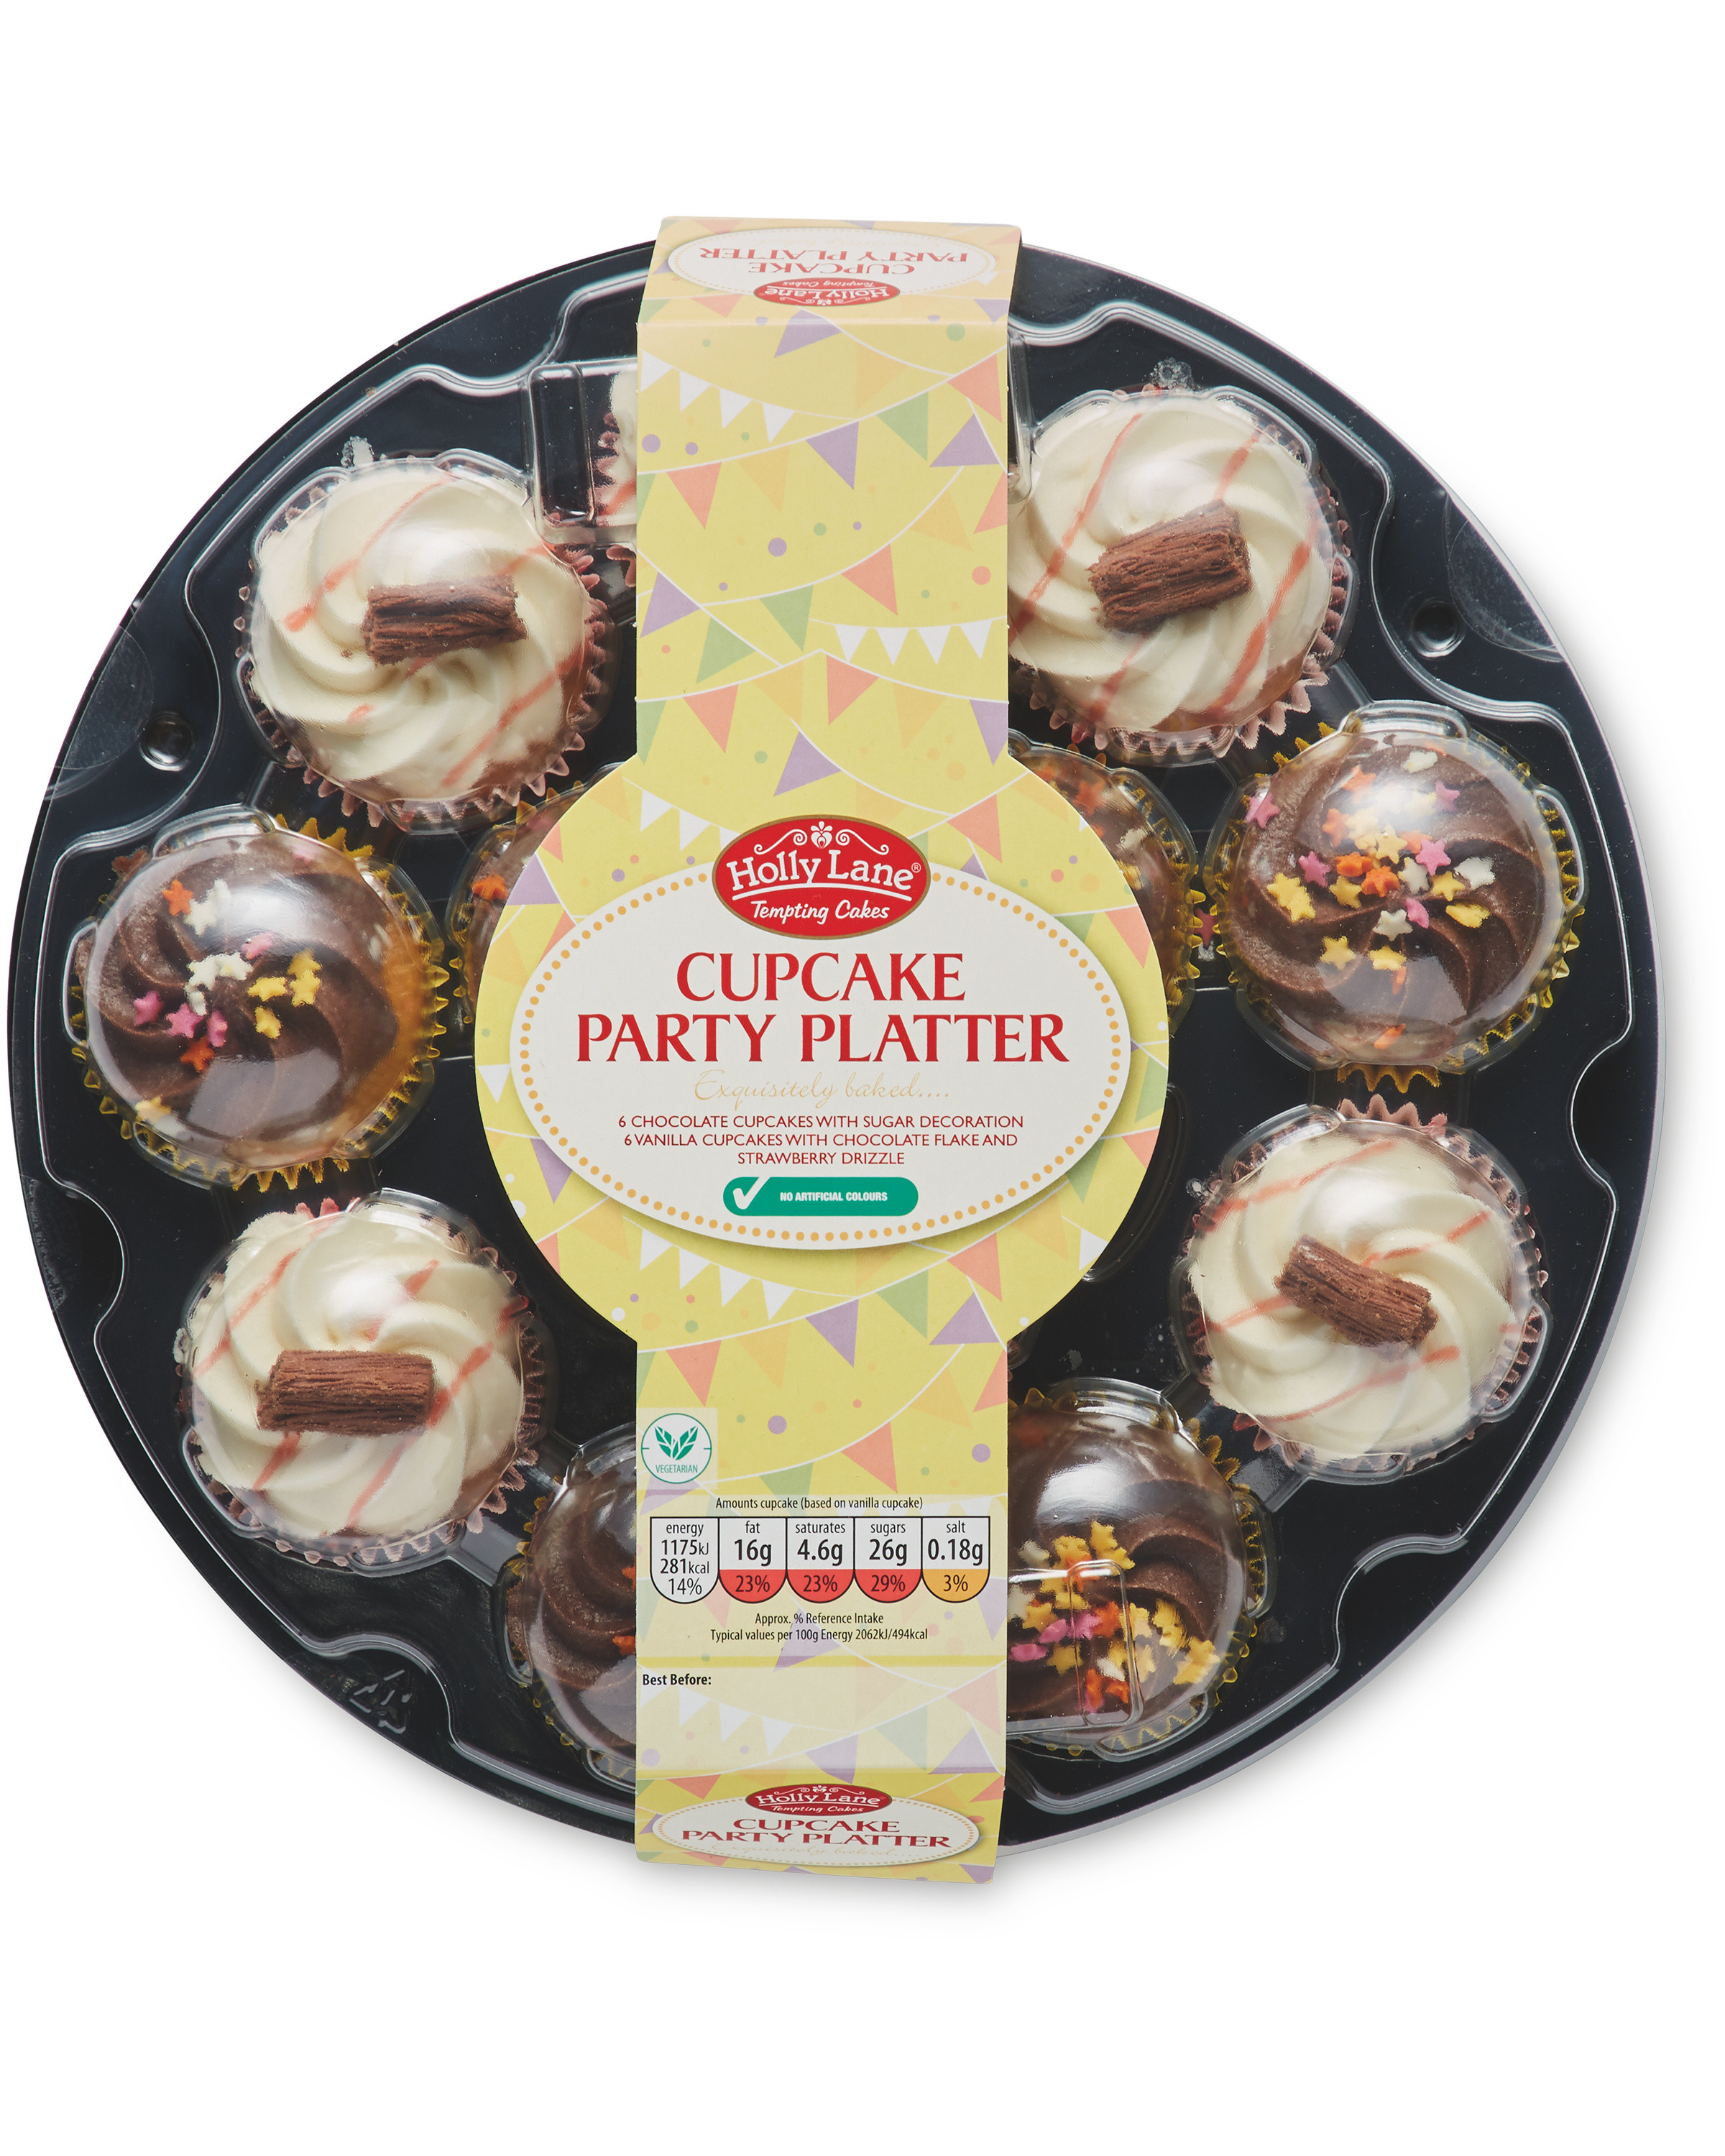 Cupcake Party Platter